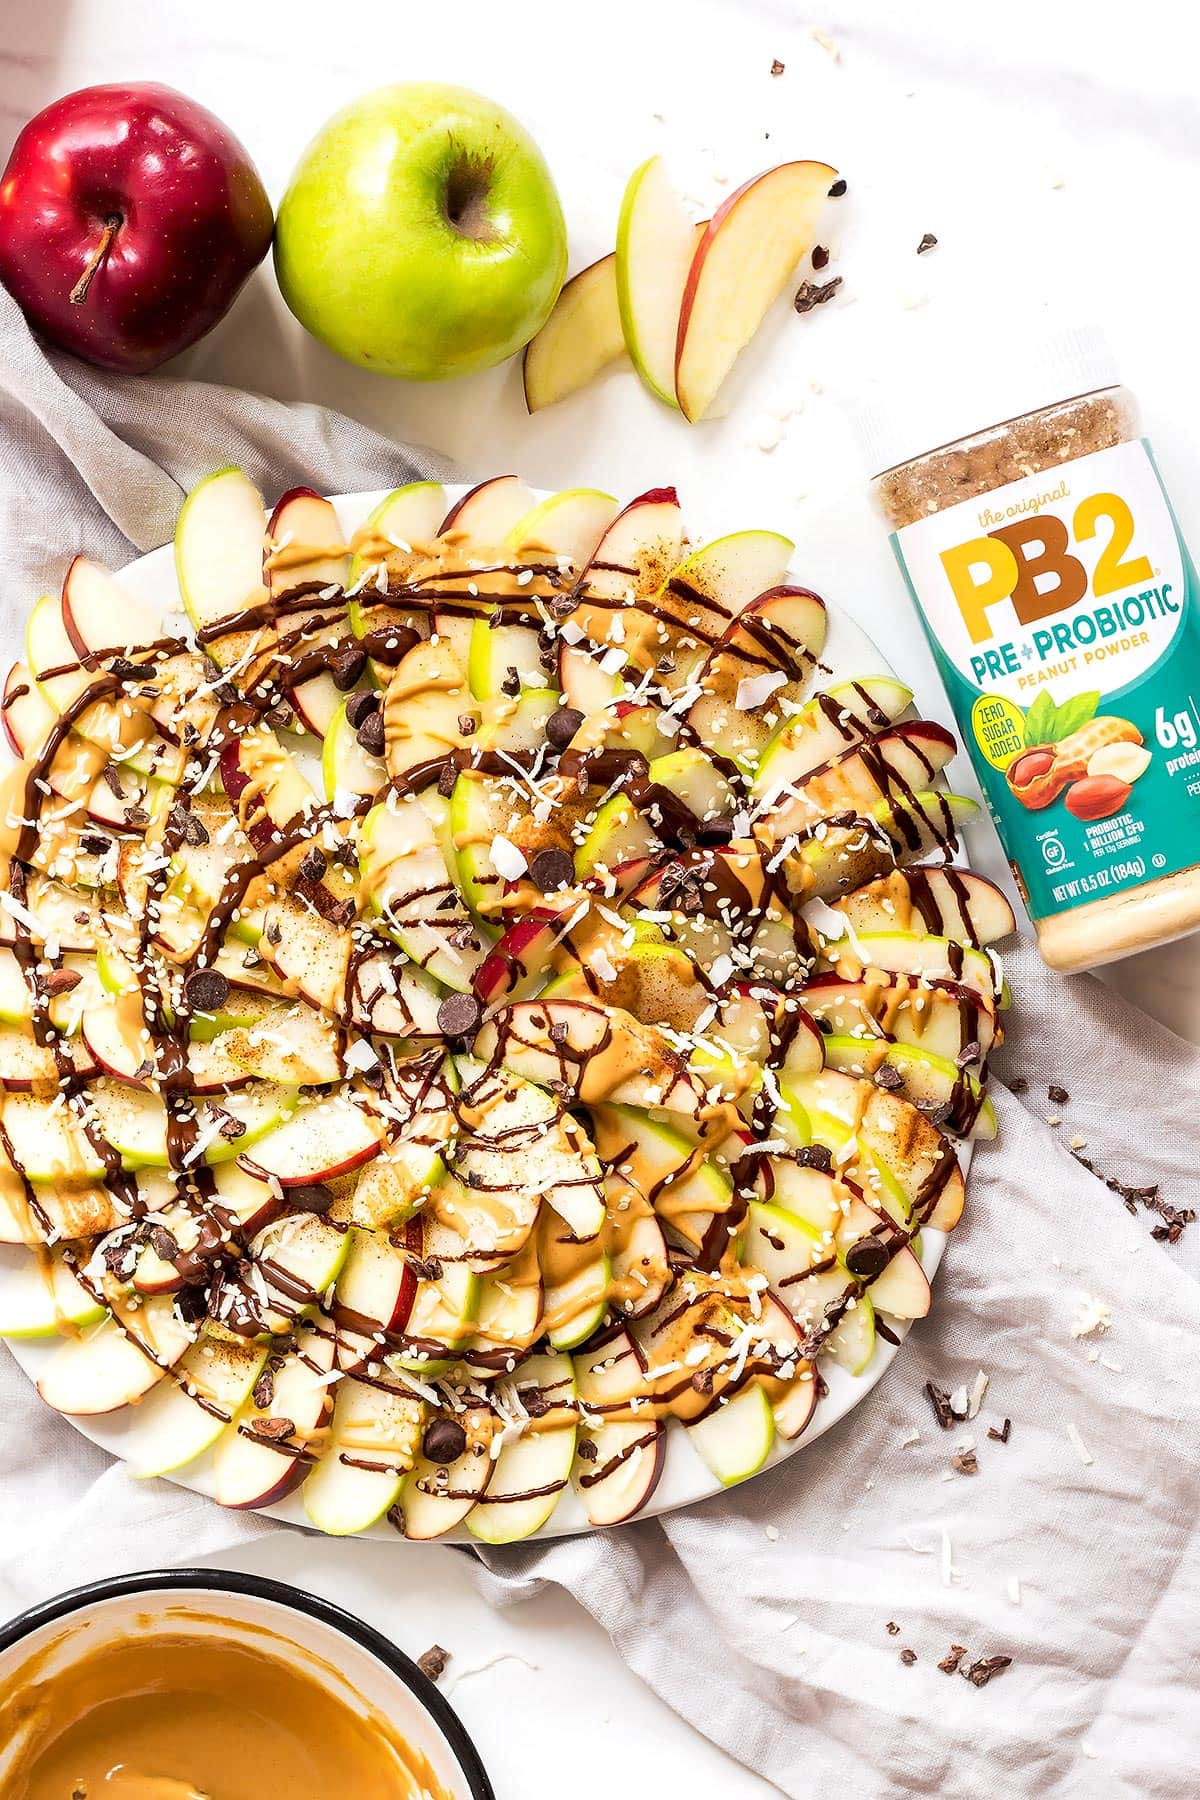 Peanut Butter Apple Nachos